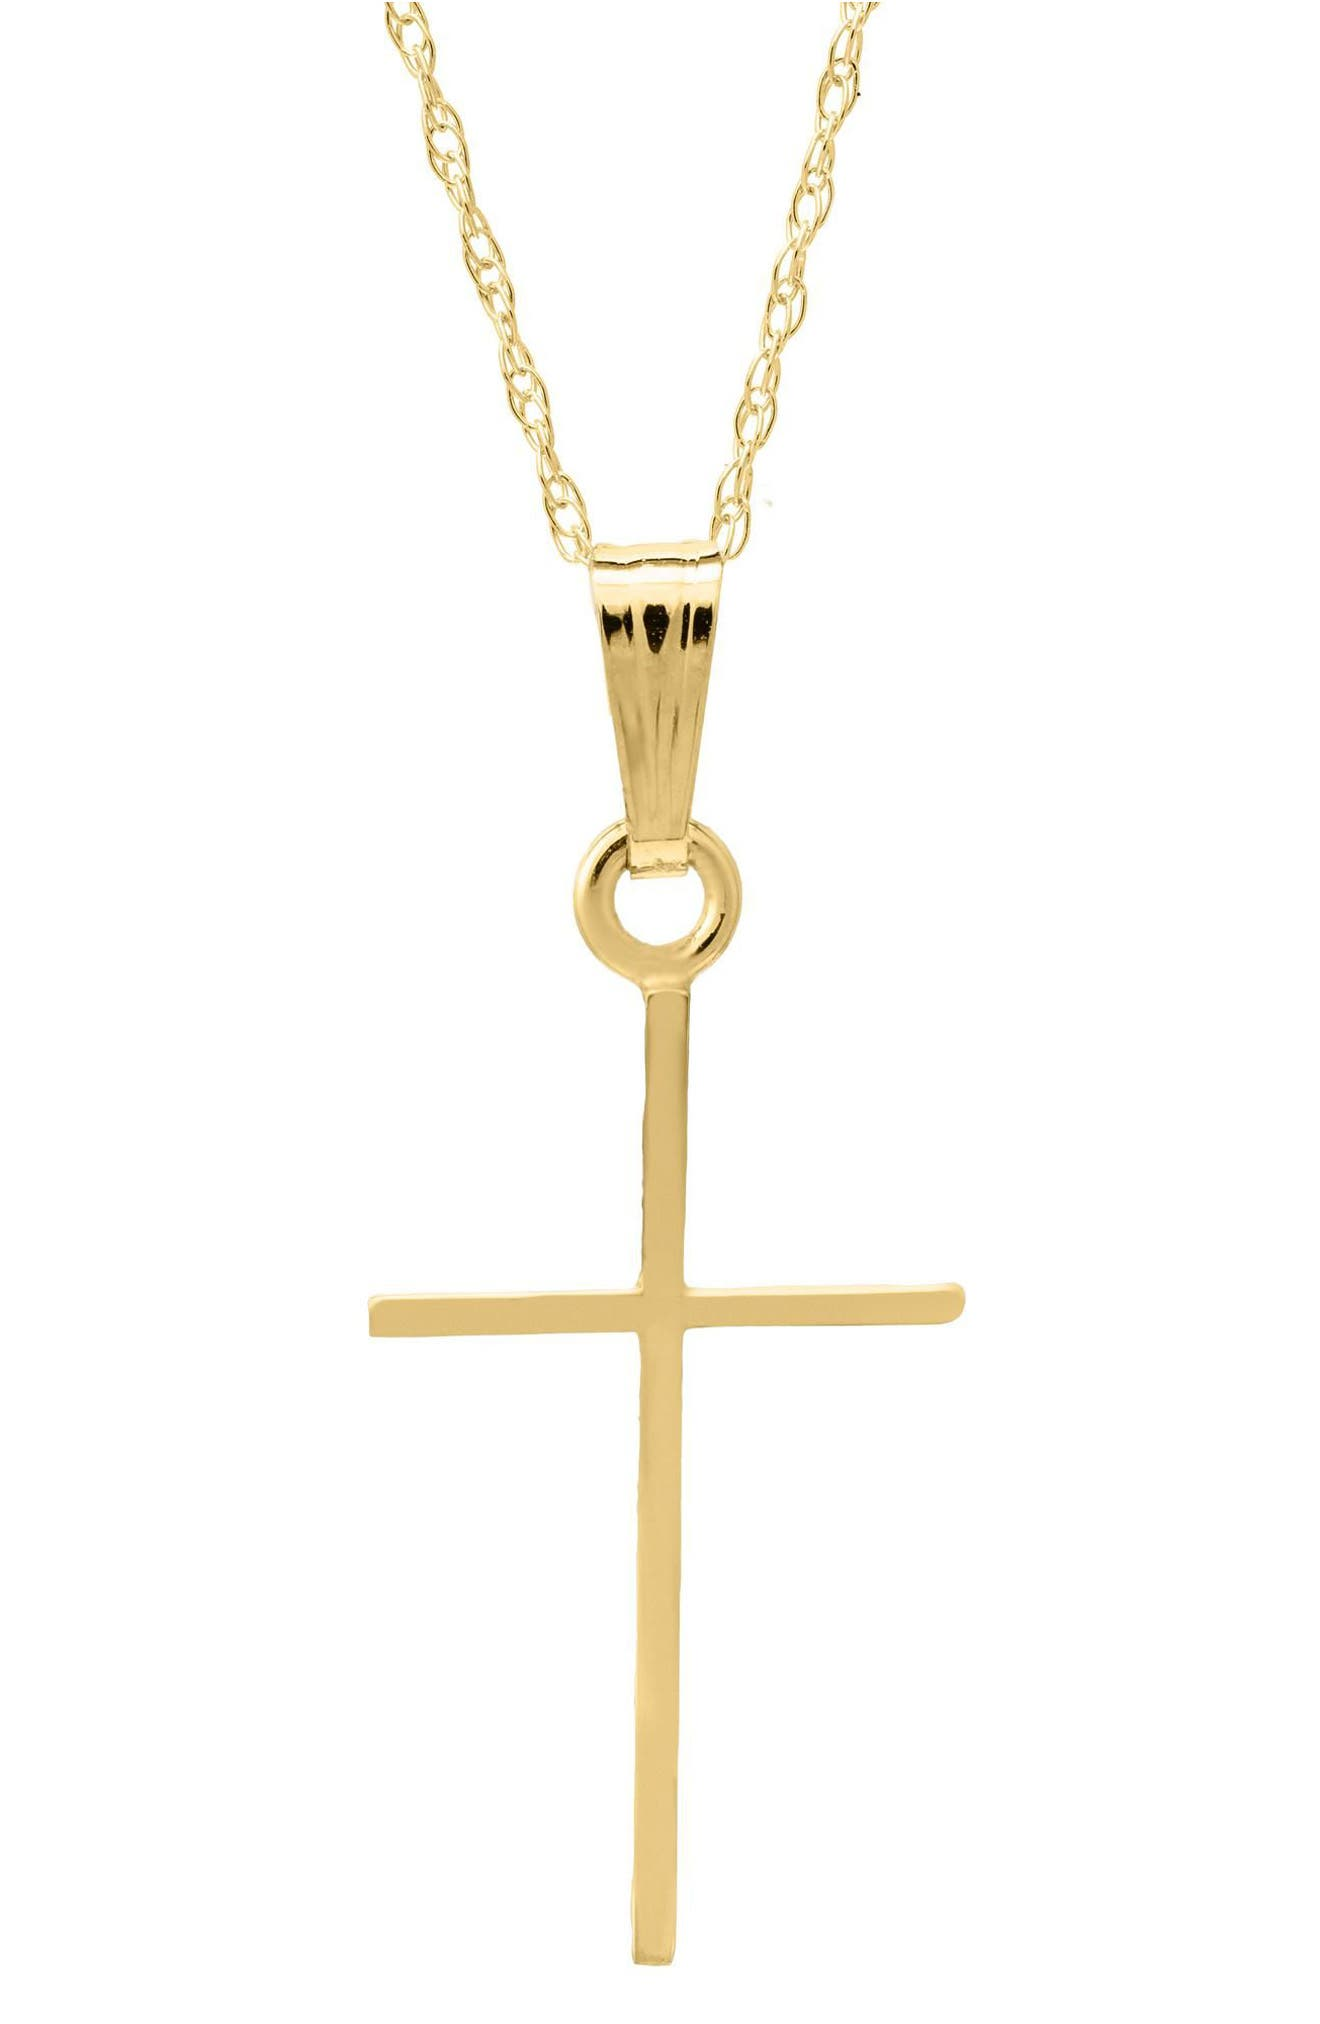 MIGNONETTE 14k Gold Cross Pendant Necklace